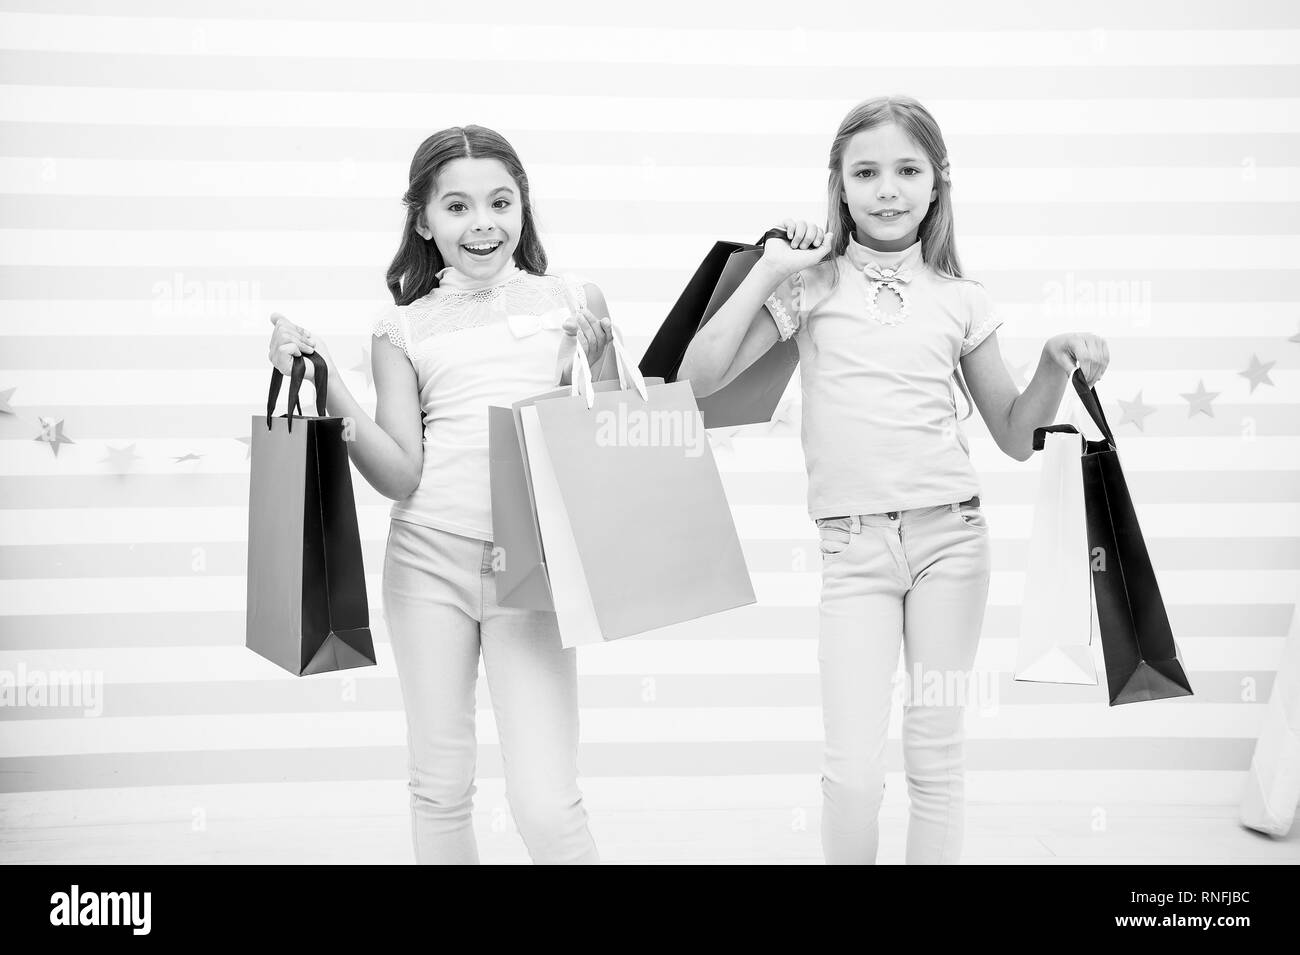 Girlish happiness. Kids happy carry bunch packages. Shopping with best friend concept. Girls like shopping. Kids happy small girls hold shopping bags. Enjoy shopping with best friend or sister. - Stock Image